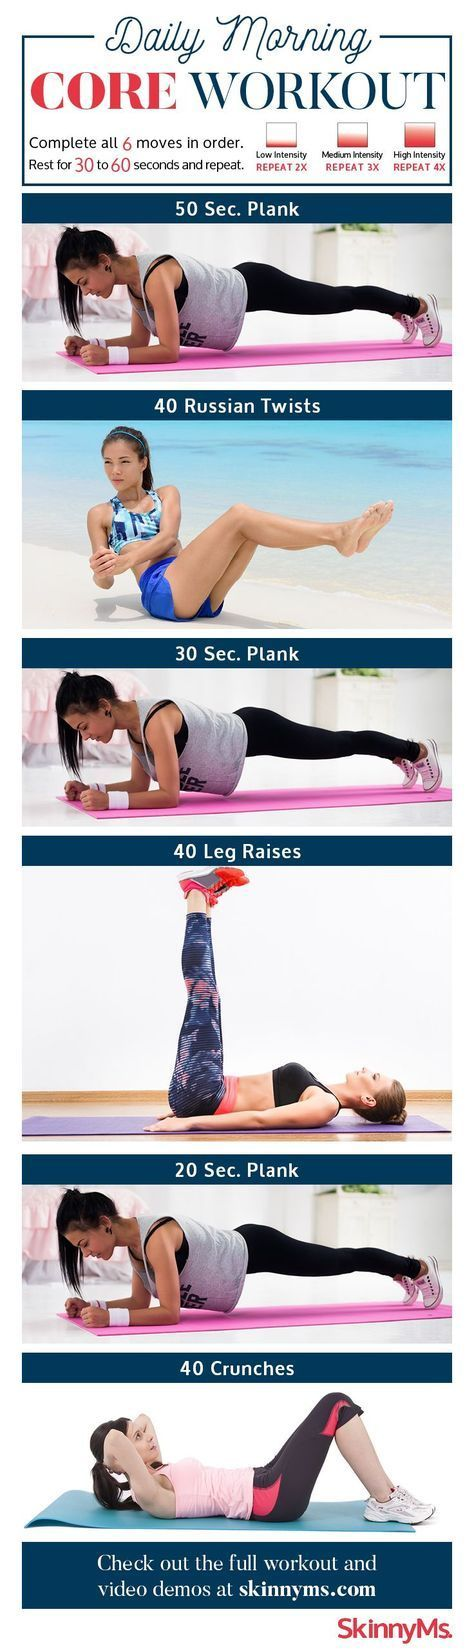 Daily Morning Core Workout #fitness #exercises